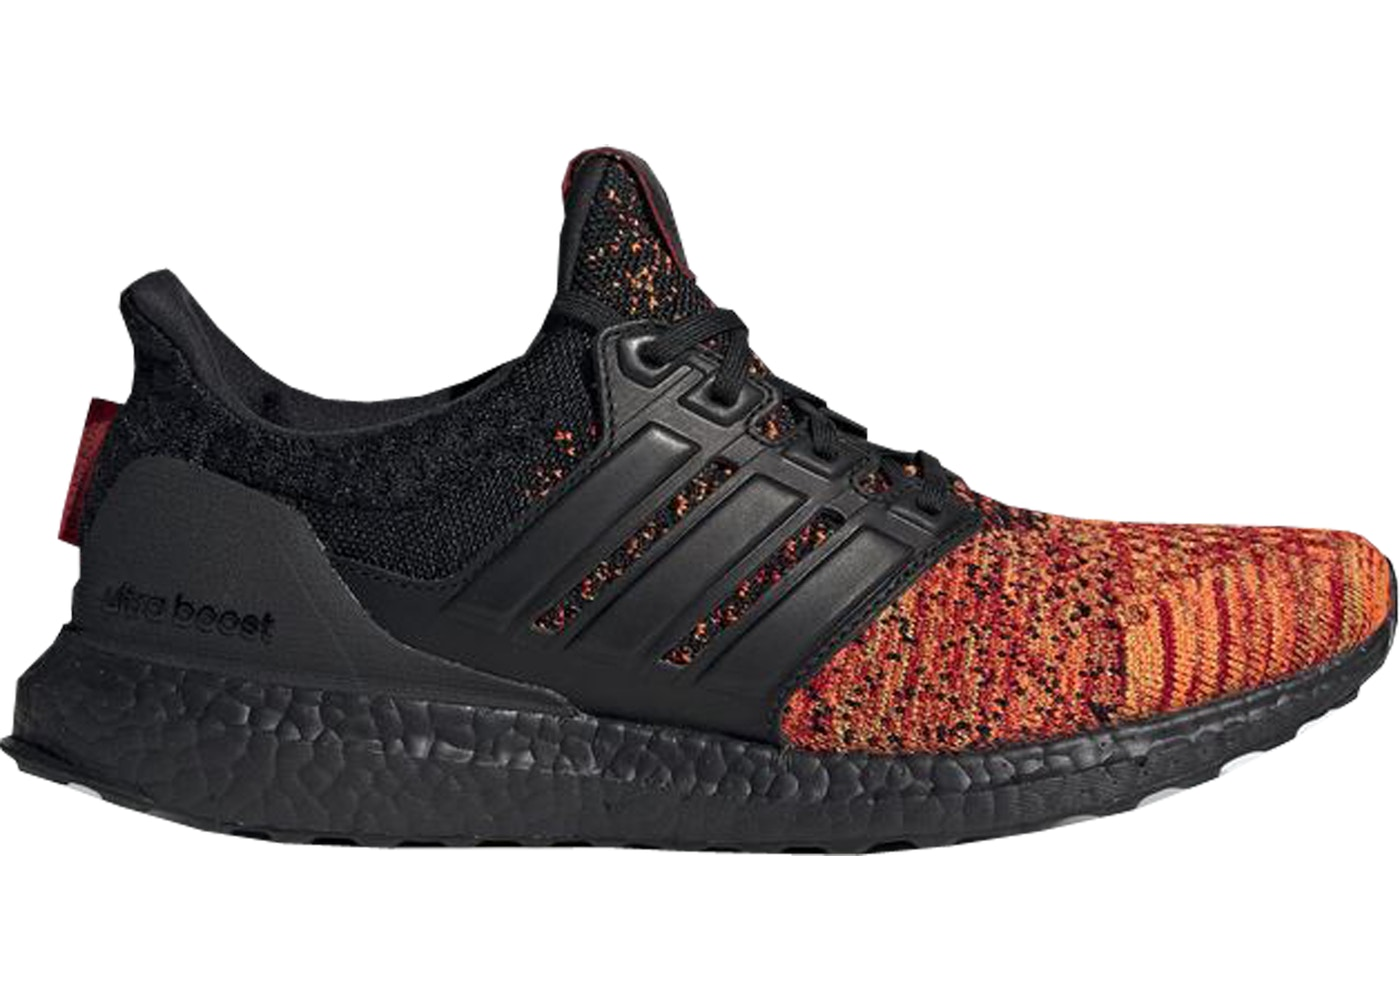 53fbec6b6a3 adidas Ultra Boost 4.0 Game of Thrones Targaryen Dragons. Game of Thrones  Targaryen Dragons